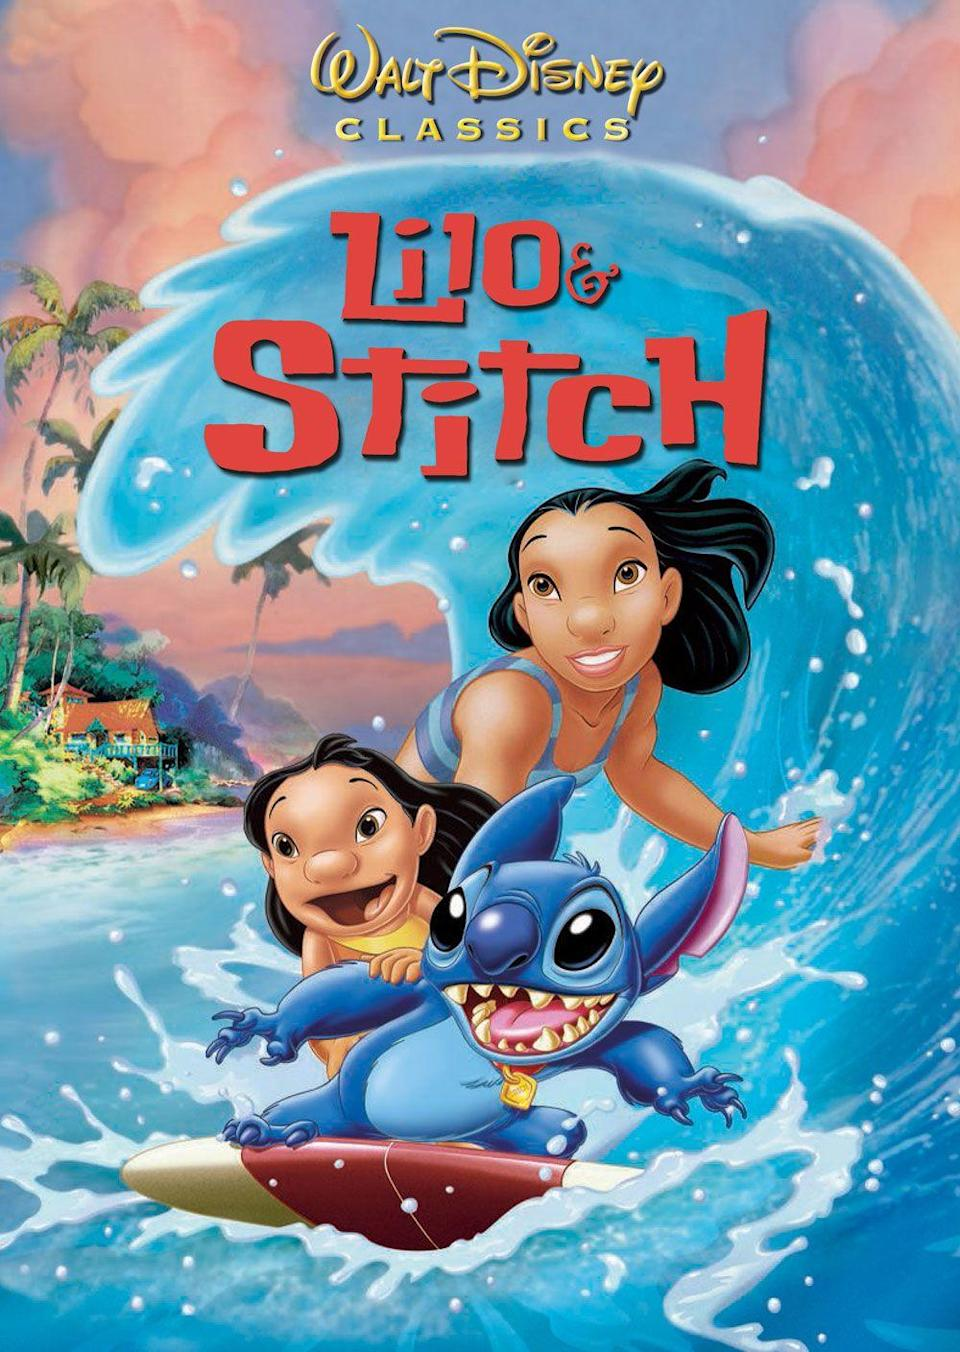 """<p>Get ready to ride this Hawaiian roller coaster ride! <em>Lilo & Stitch </em>will be getting the live action treatment. The movie will be produced by the same producers as <em>Aladdin </em>and will be a live-action/CGI hybrid, according to <em><a href=""""https://www.hollywoodreporter.com/heat-vision/lilo-stitch-live-action-disney-remake-works-1148811"""" rel=""""nofollow noopener"""" target=""""_blank"""" data-ylk=""""slk:The Hollywood Reporter"""" class=""""link rapid-noclick-resp"""">The Hollywood Reporter</a></em>. Casting and release dates haven't been announced yet, but we're definitely excited to see this movie come to life.</p><p><a class=""""link rapid-noclick-resp"""" href=""""https://www.amazon.com/Lilo-Stitch-Daveigh-Chase/dp/B006RZZ9YY/?tag=syn-yahoo-20&ascsubtag=%5Bartid%7C10065.g.2936%5Bsrc%7Cyahoo-us"""" rel=""""nofollow noopener"""" target=""""_blank"""" data-ylk=""""slk:Watch the Original"""">Watch the Original</a></p>"""